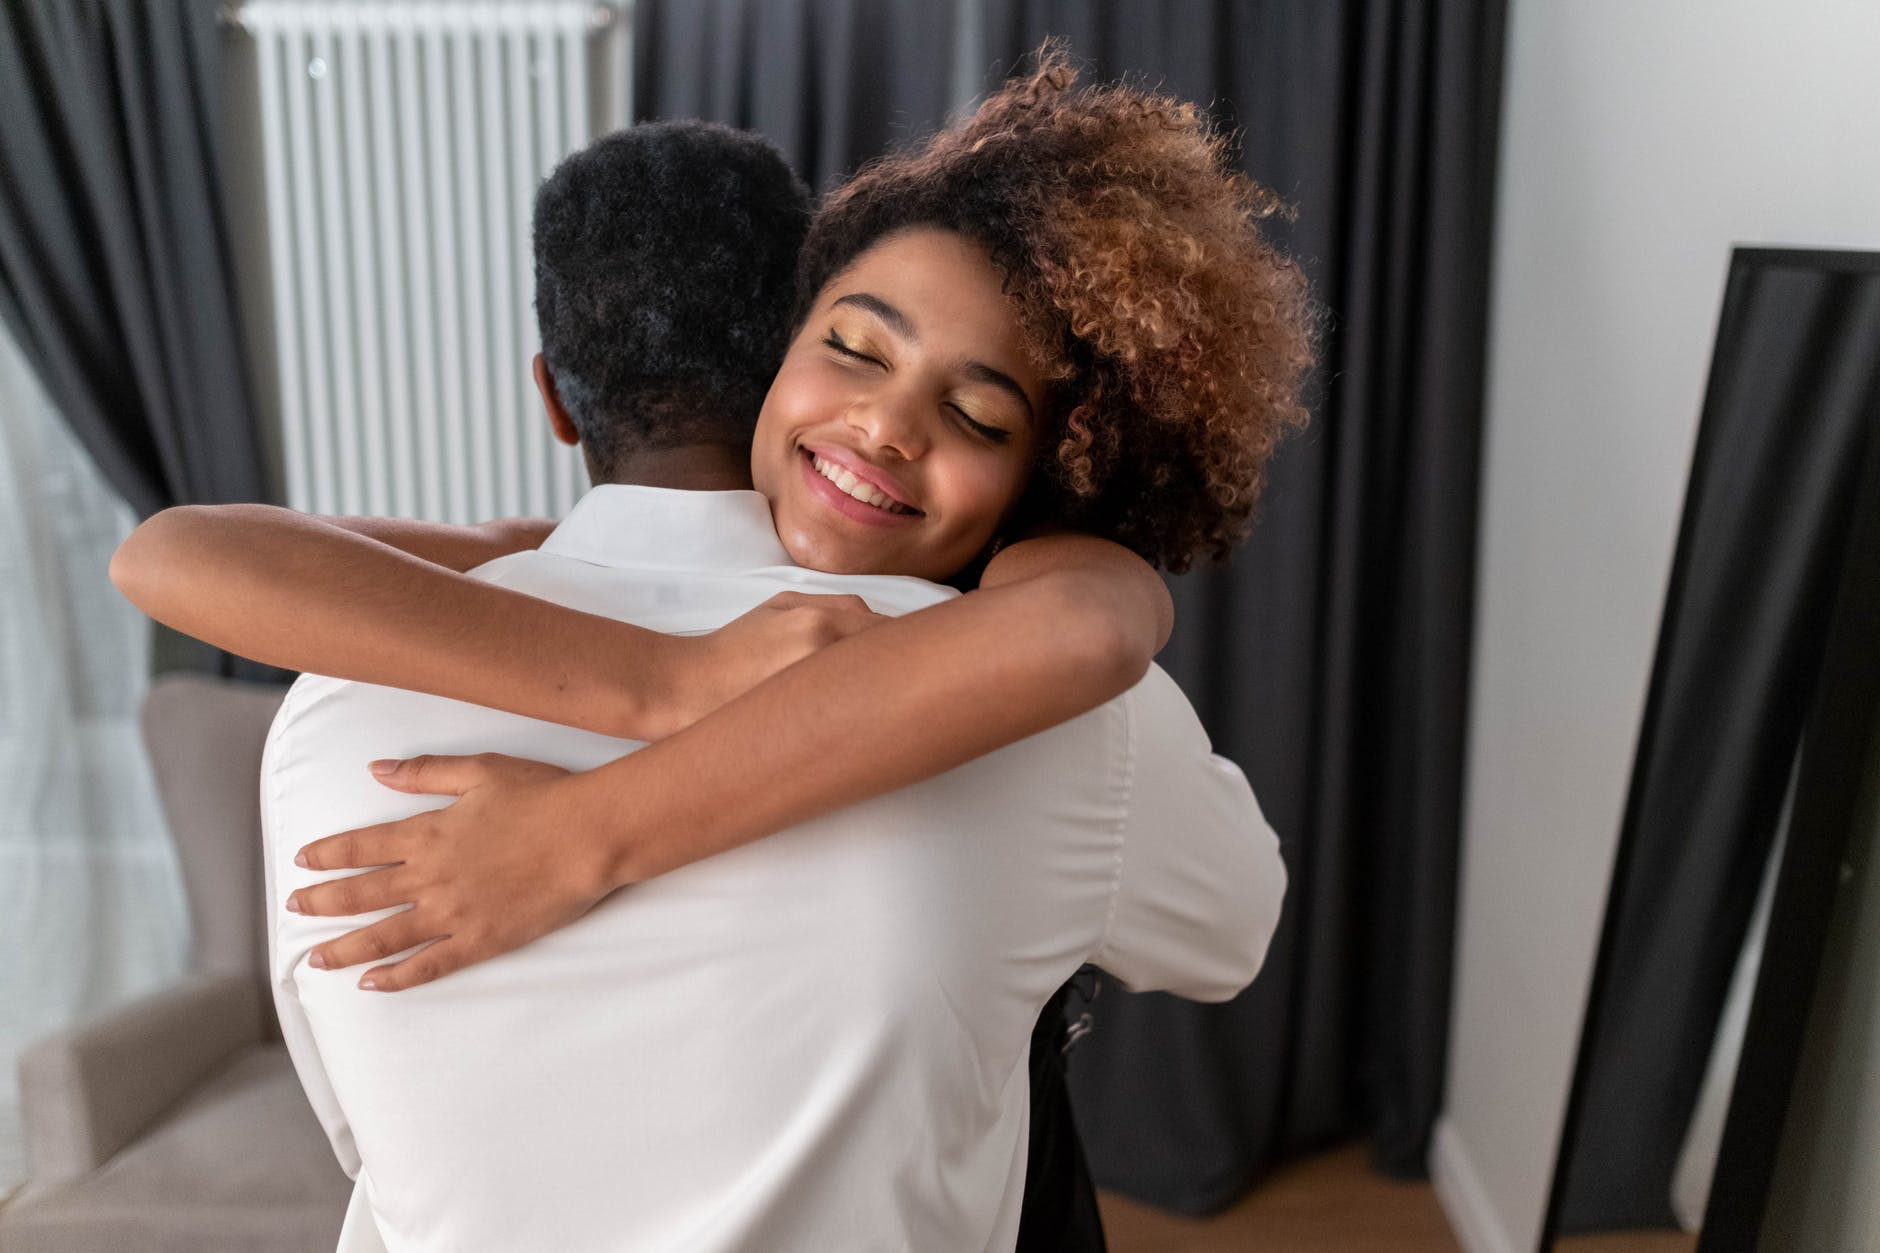 Alice hugged her dad and was never ashamed of him again.   Source: Pexels